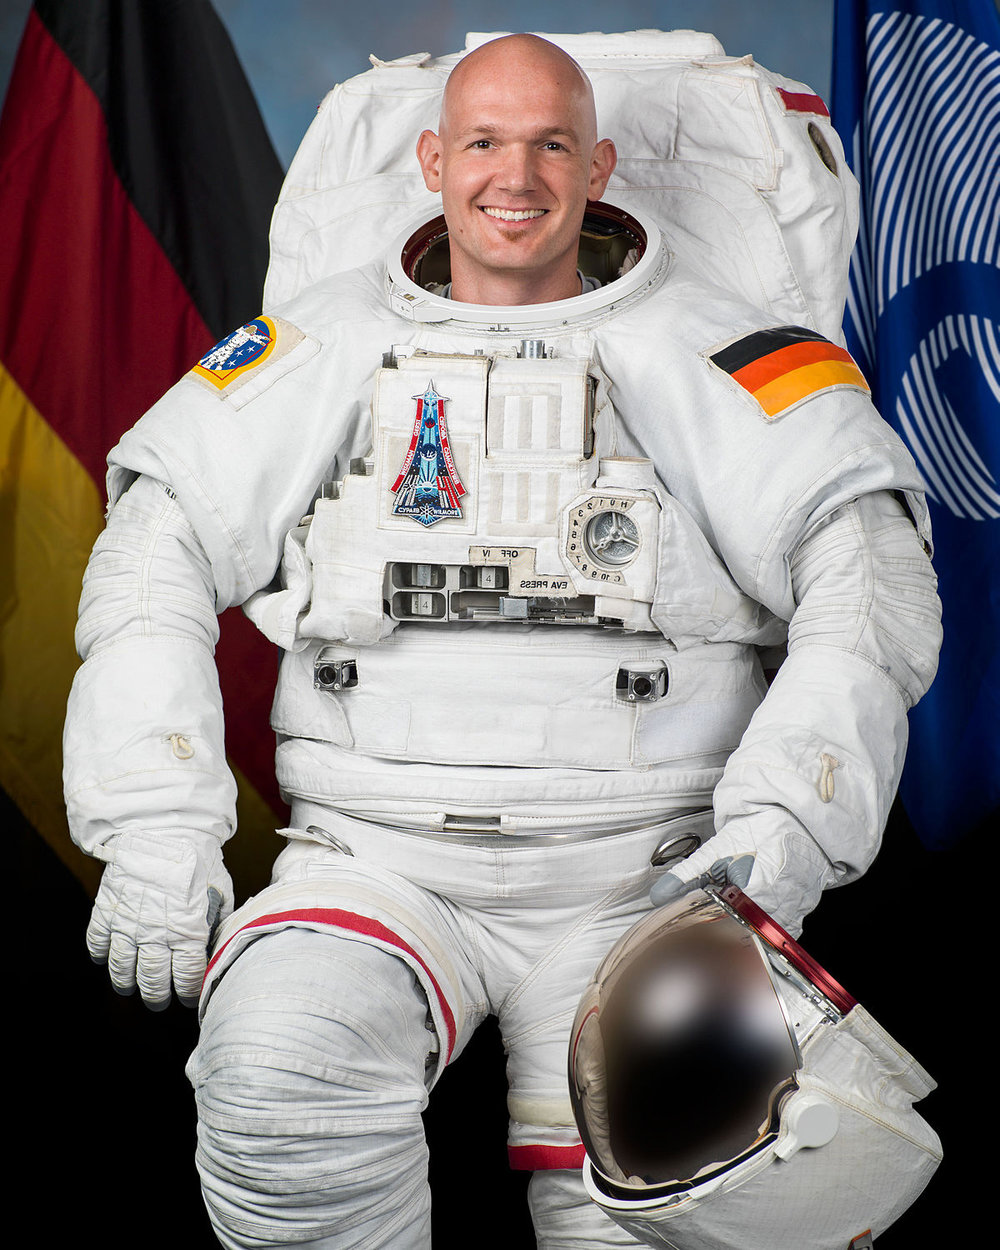 It isn't everyday you get a phone call from outer space! Alexander Gerst, the soon-to-be-first German Space Commander, called us up shortly after arriving at the International Space Station to find out what we were up to!